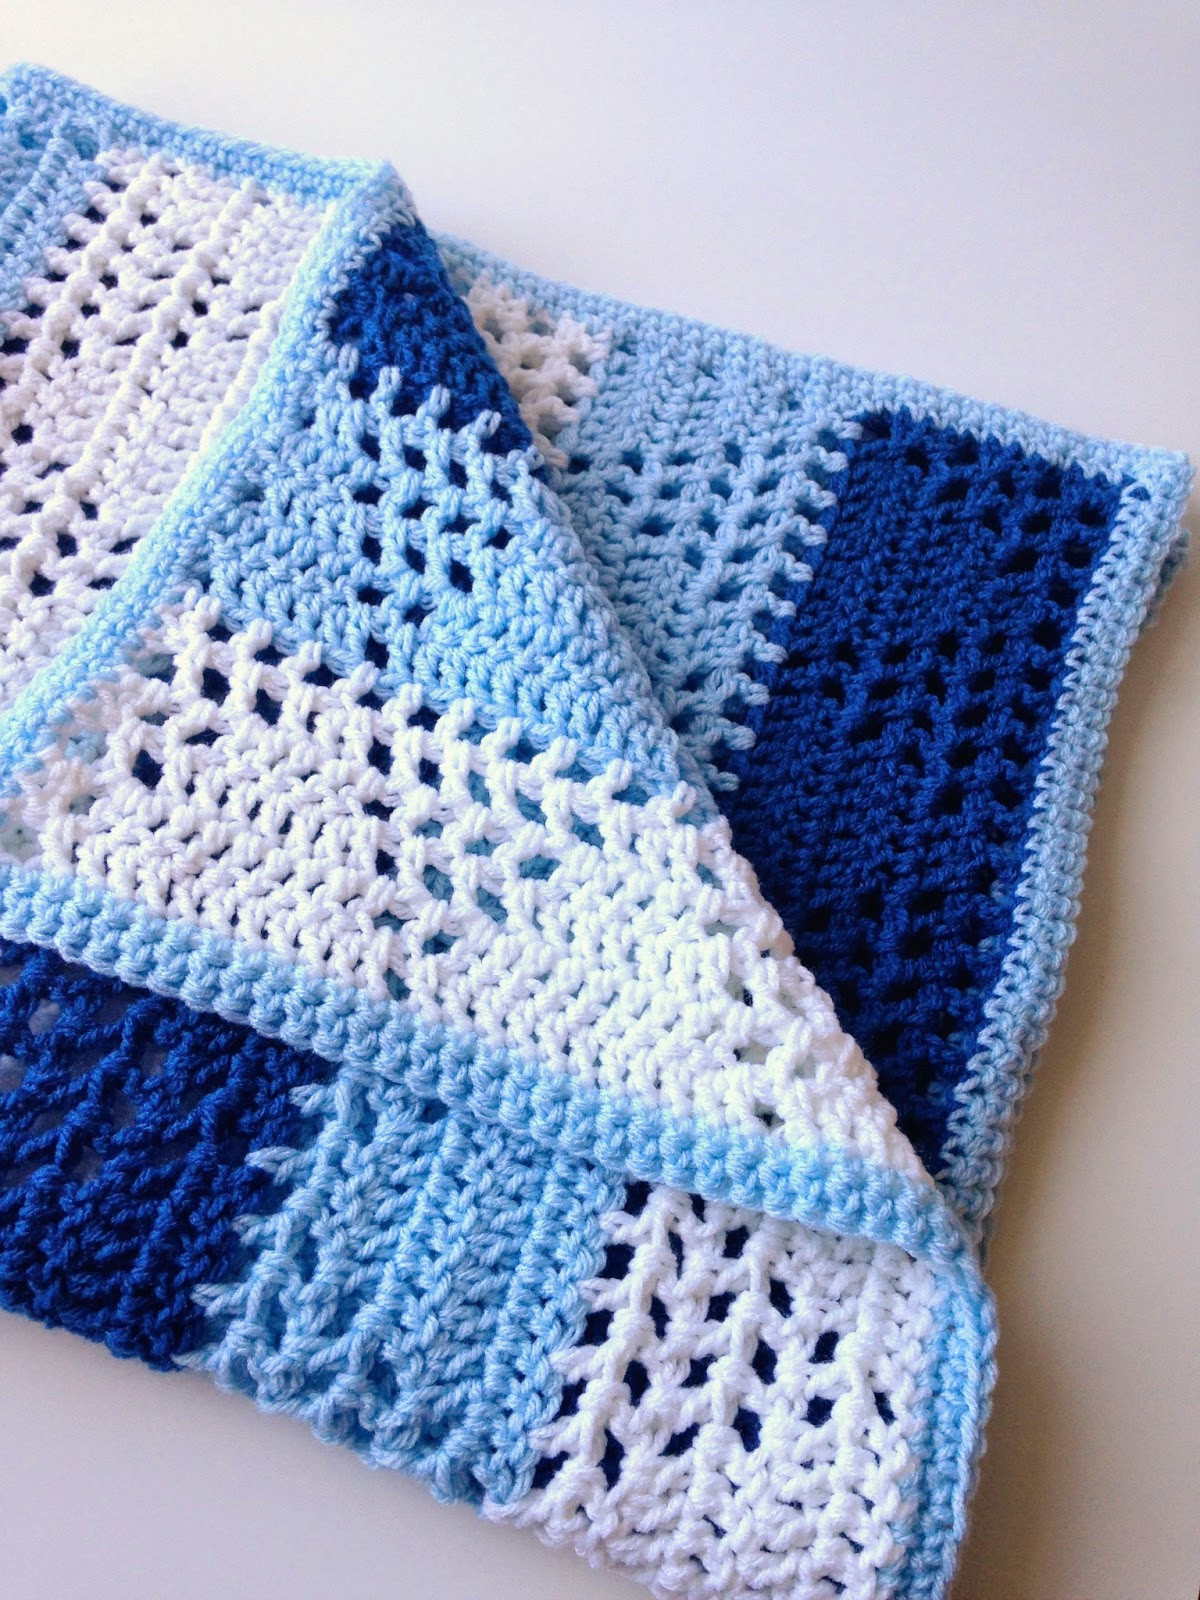 Baby Boy Crochet Blanket Patterns Awesome 5 Little Monsters Triangles & Stripes Baby Blanket Of Baby Boy Crochet Blanket Patterns Best Of 17 Best Images About Cute Cuddly Blankets On Pinterest